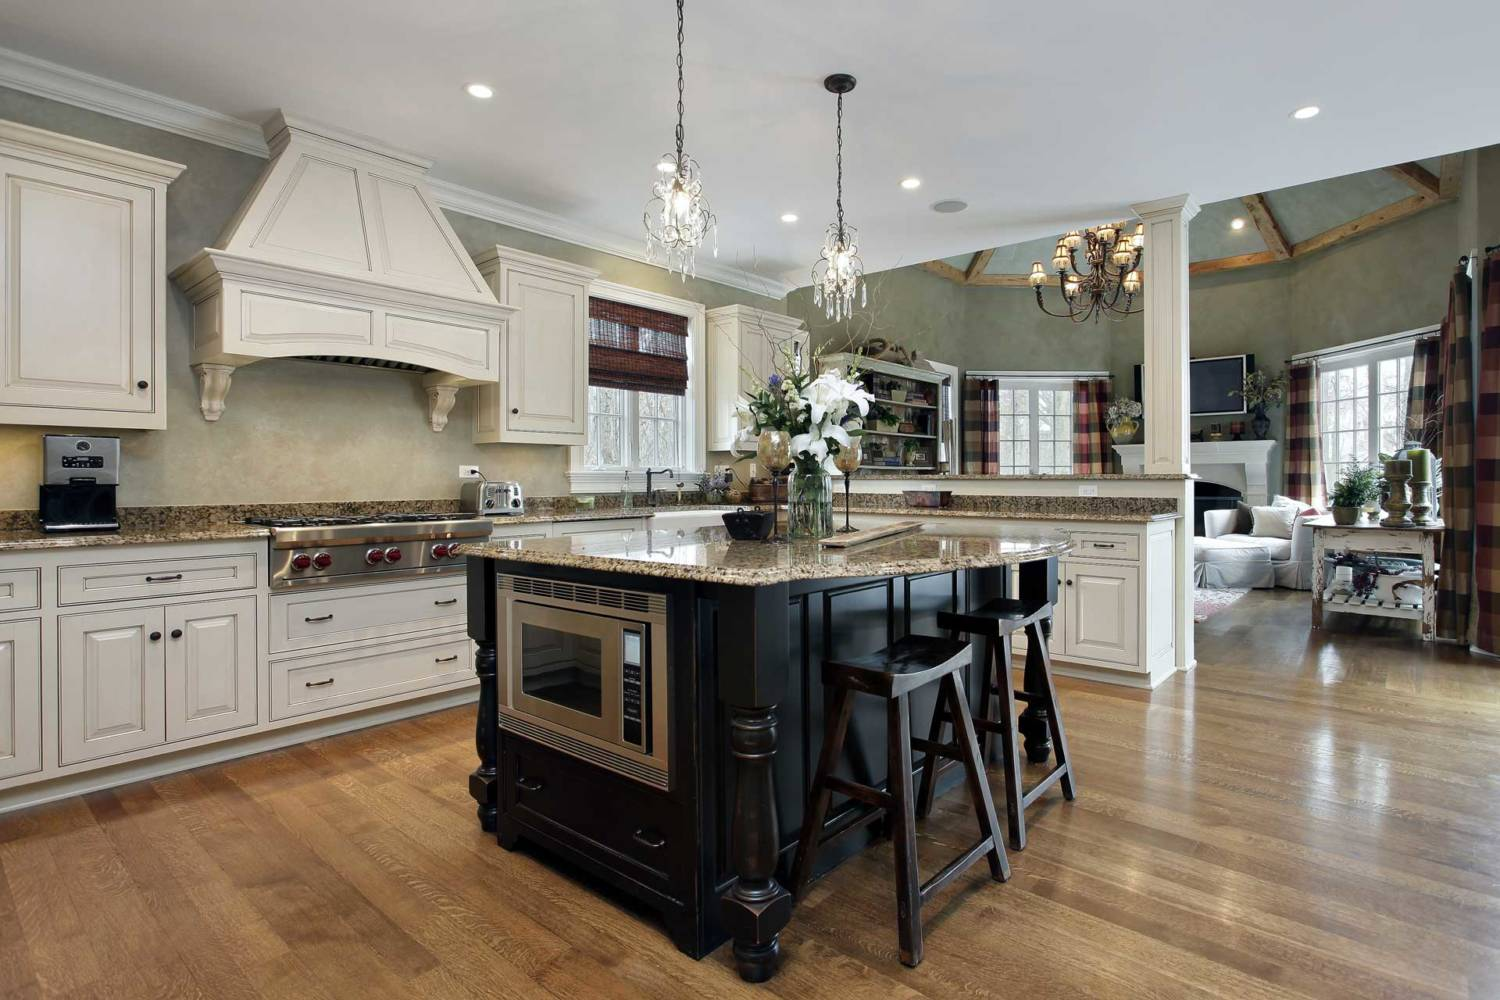 Electrical wiring of Kitchen Islands by Southern Electric - Leesburg VA